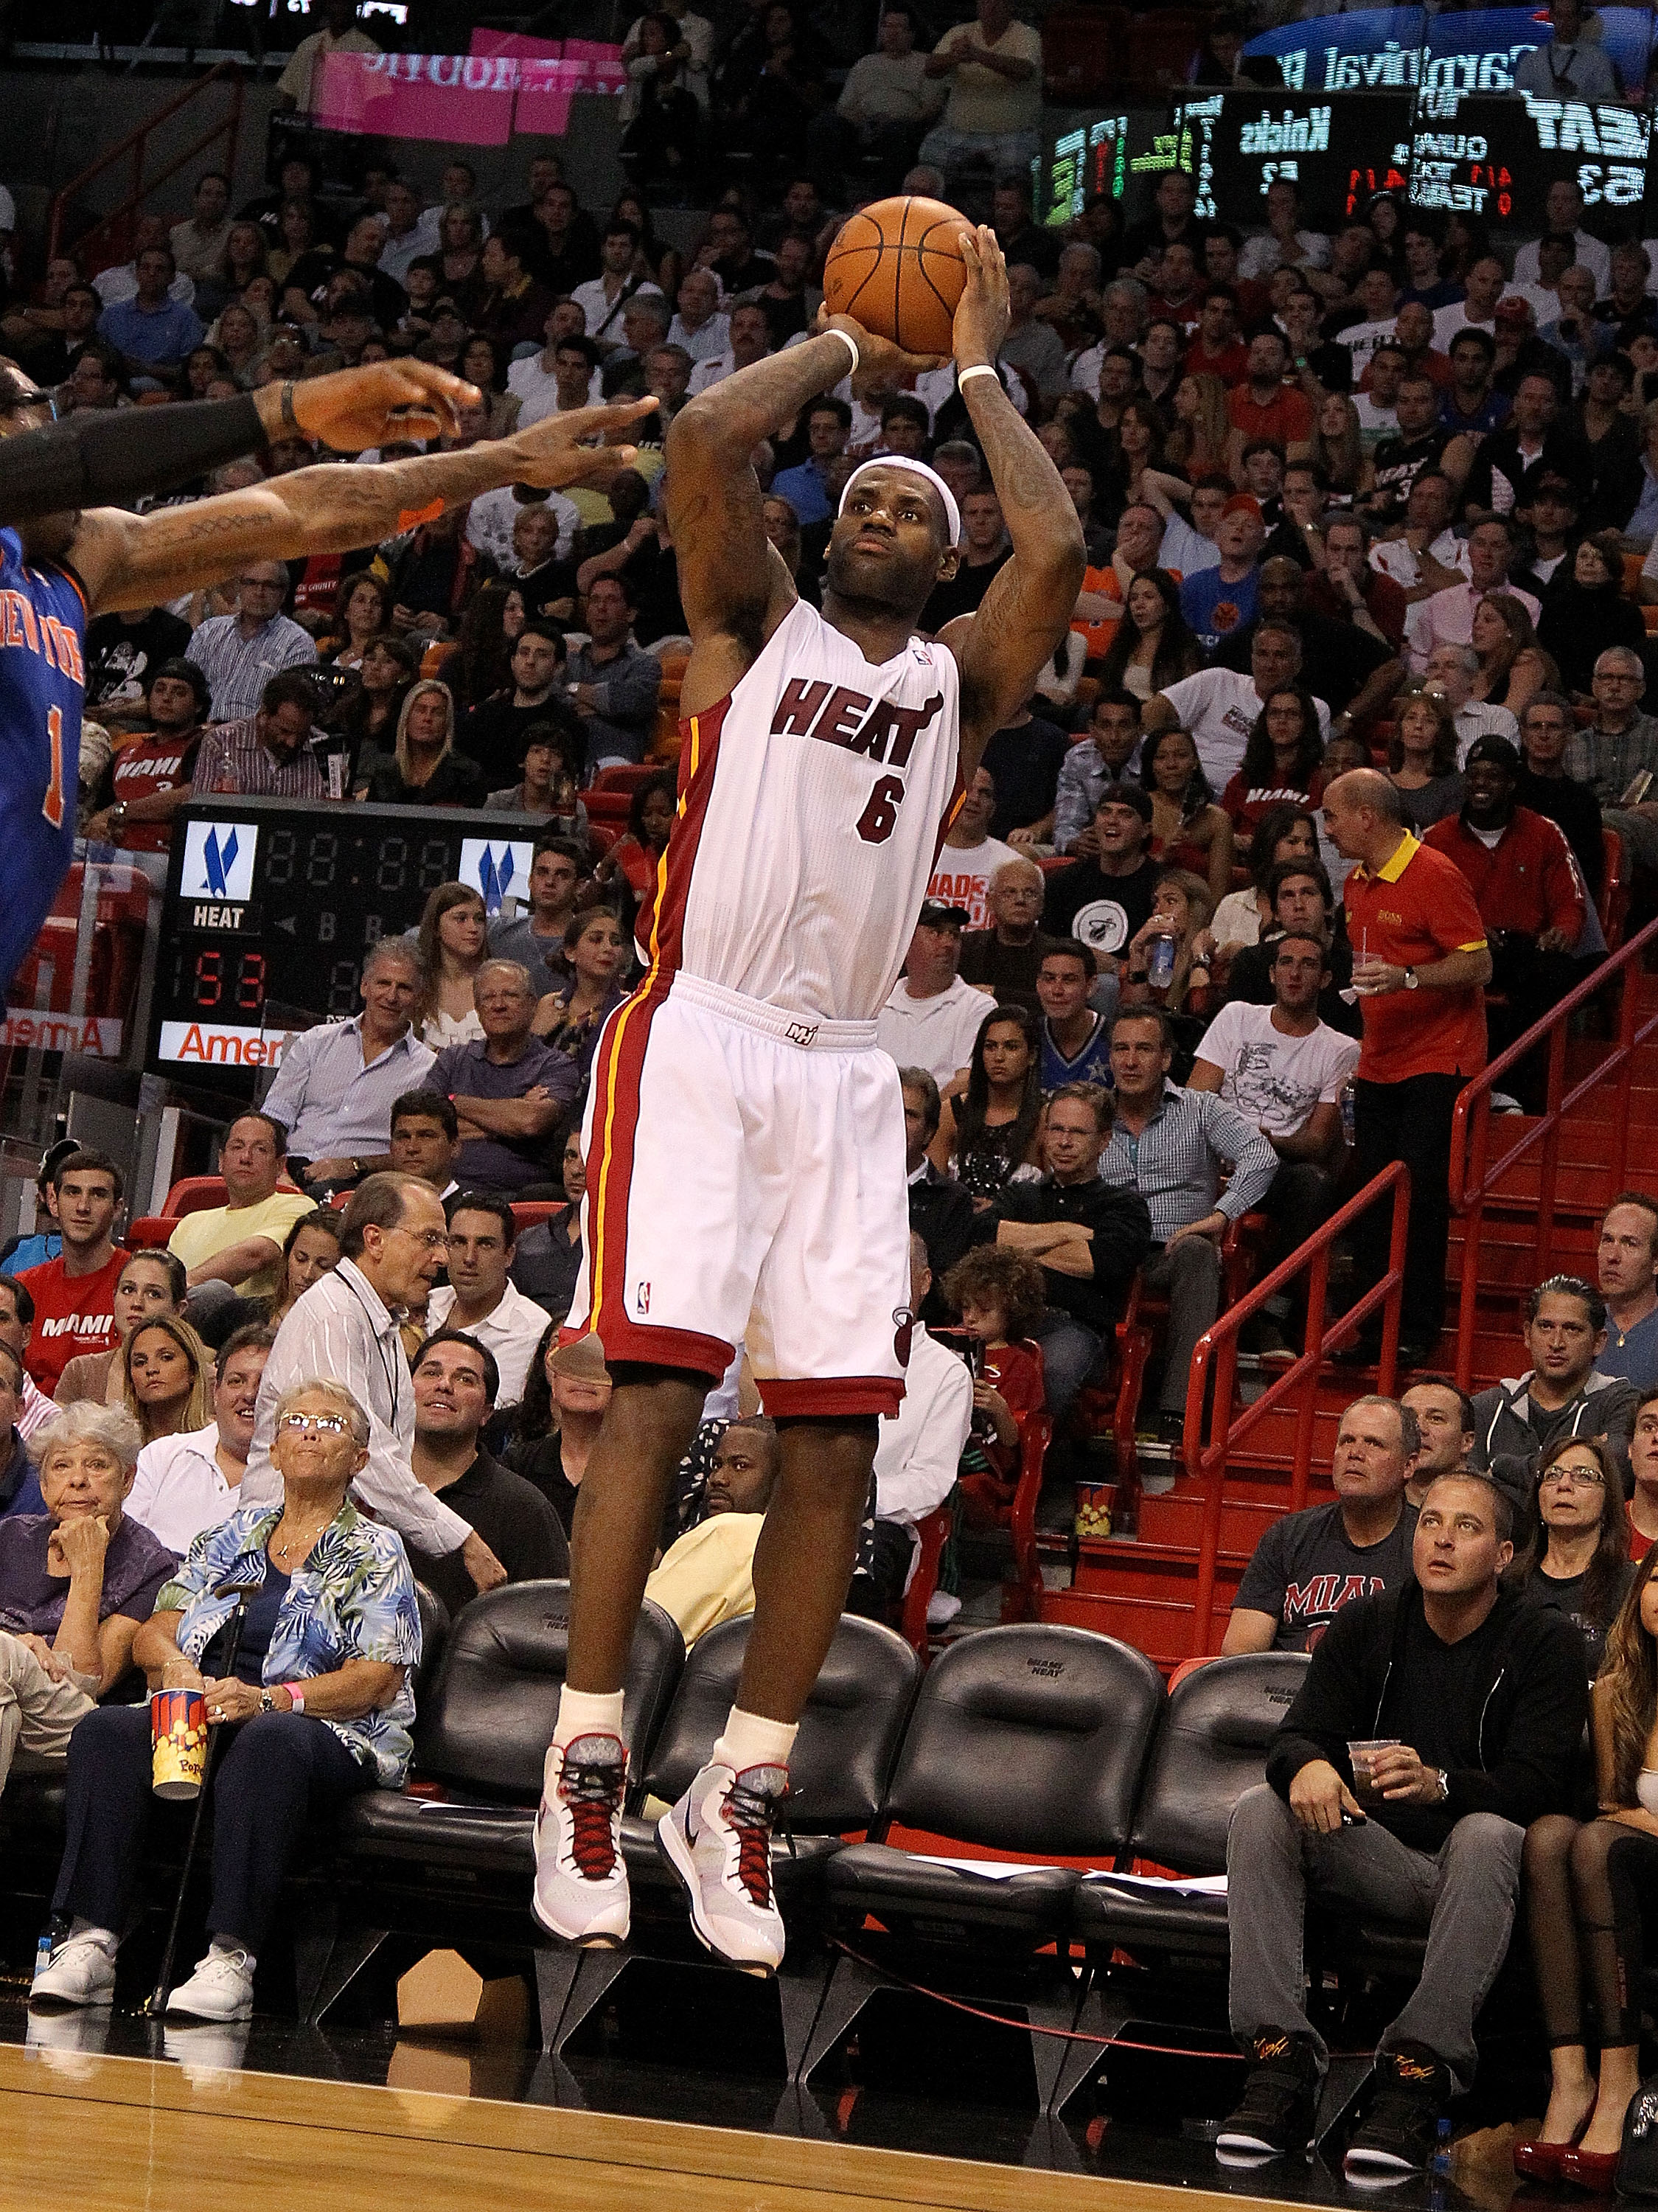 MIAMI, FL - FEBRUARY 27:  LeBron James #6 of the Miami Heat  shoots during a game against the New York Knicks at American Airlines Arena on February 27, 2011 in Miami, Florida. NOTE TO USER: User expressly acknowledges and agrees that, by downloading and/